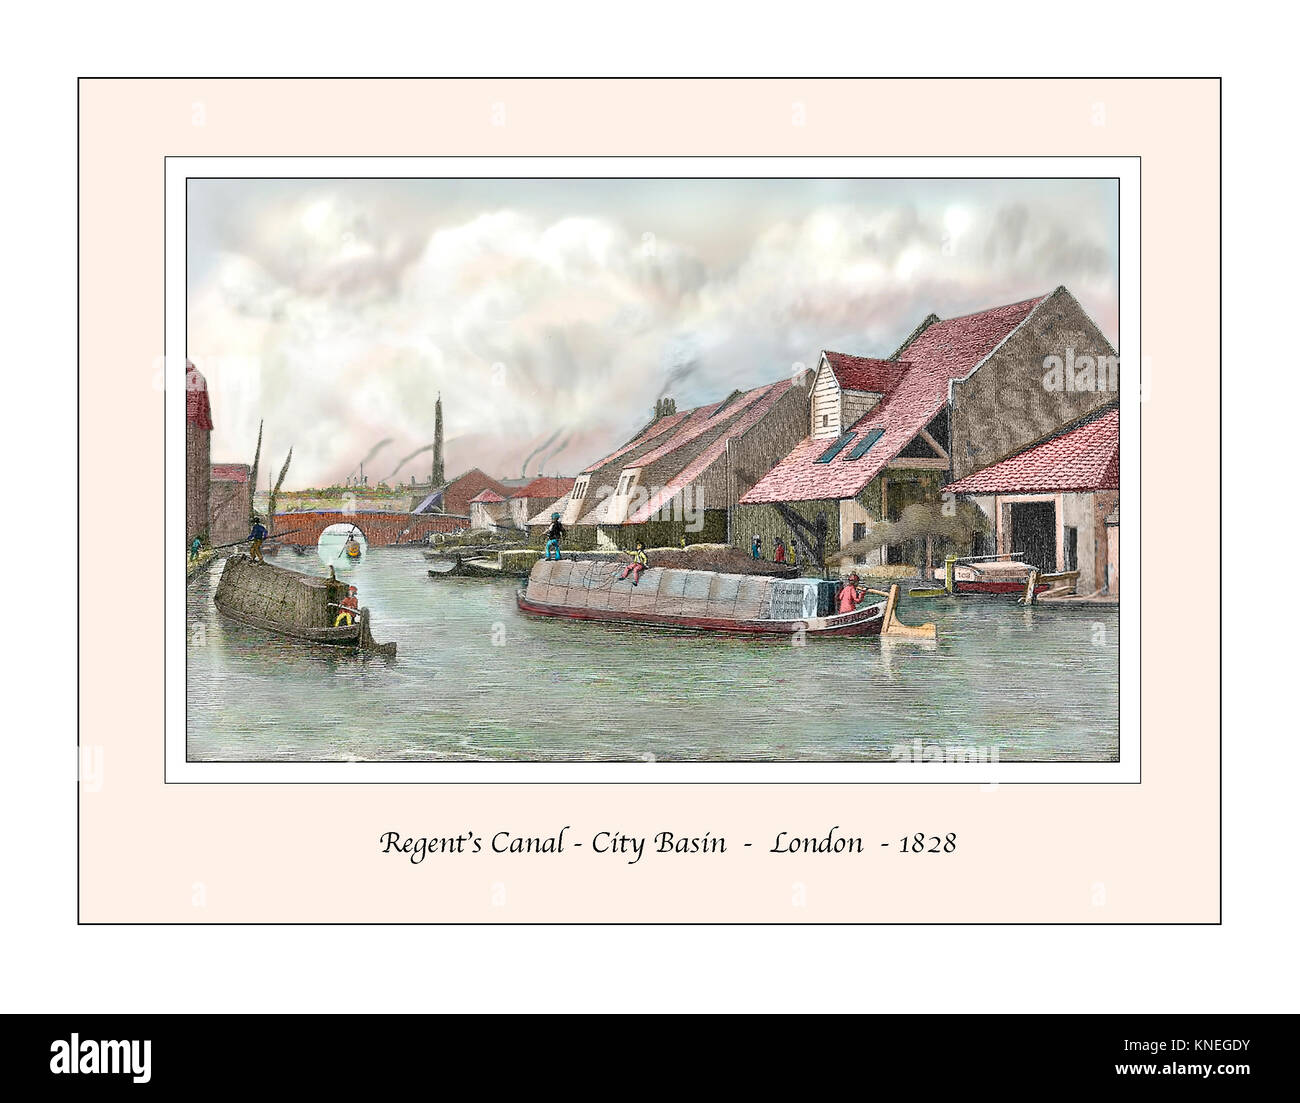 Regents Canal City Basin Original Design based on a 19th century Engraving - Stock Image